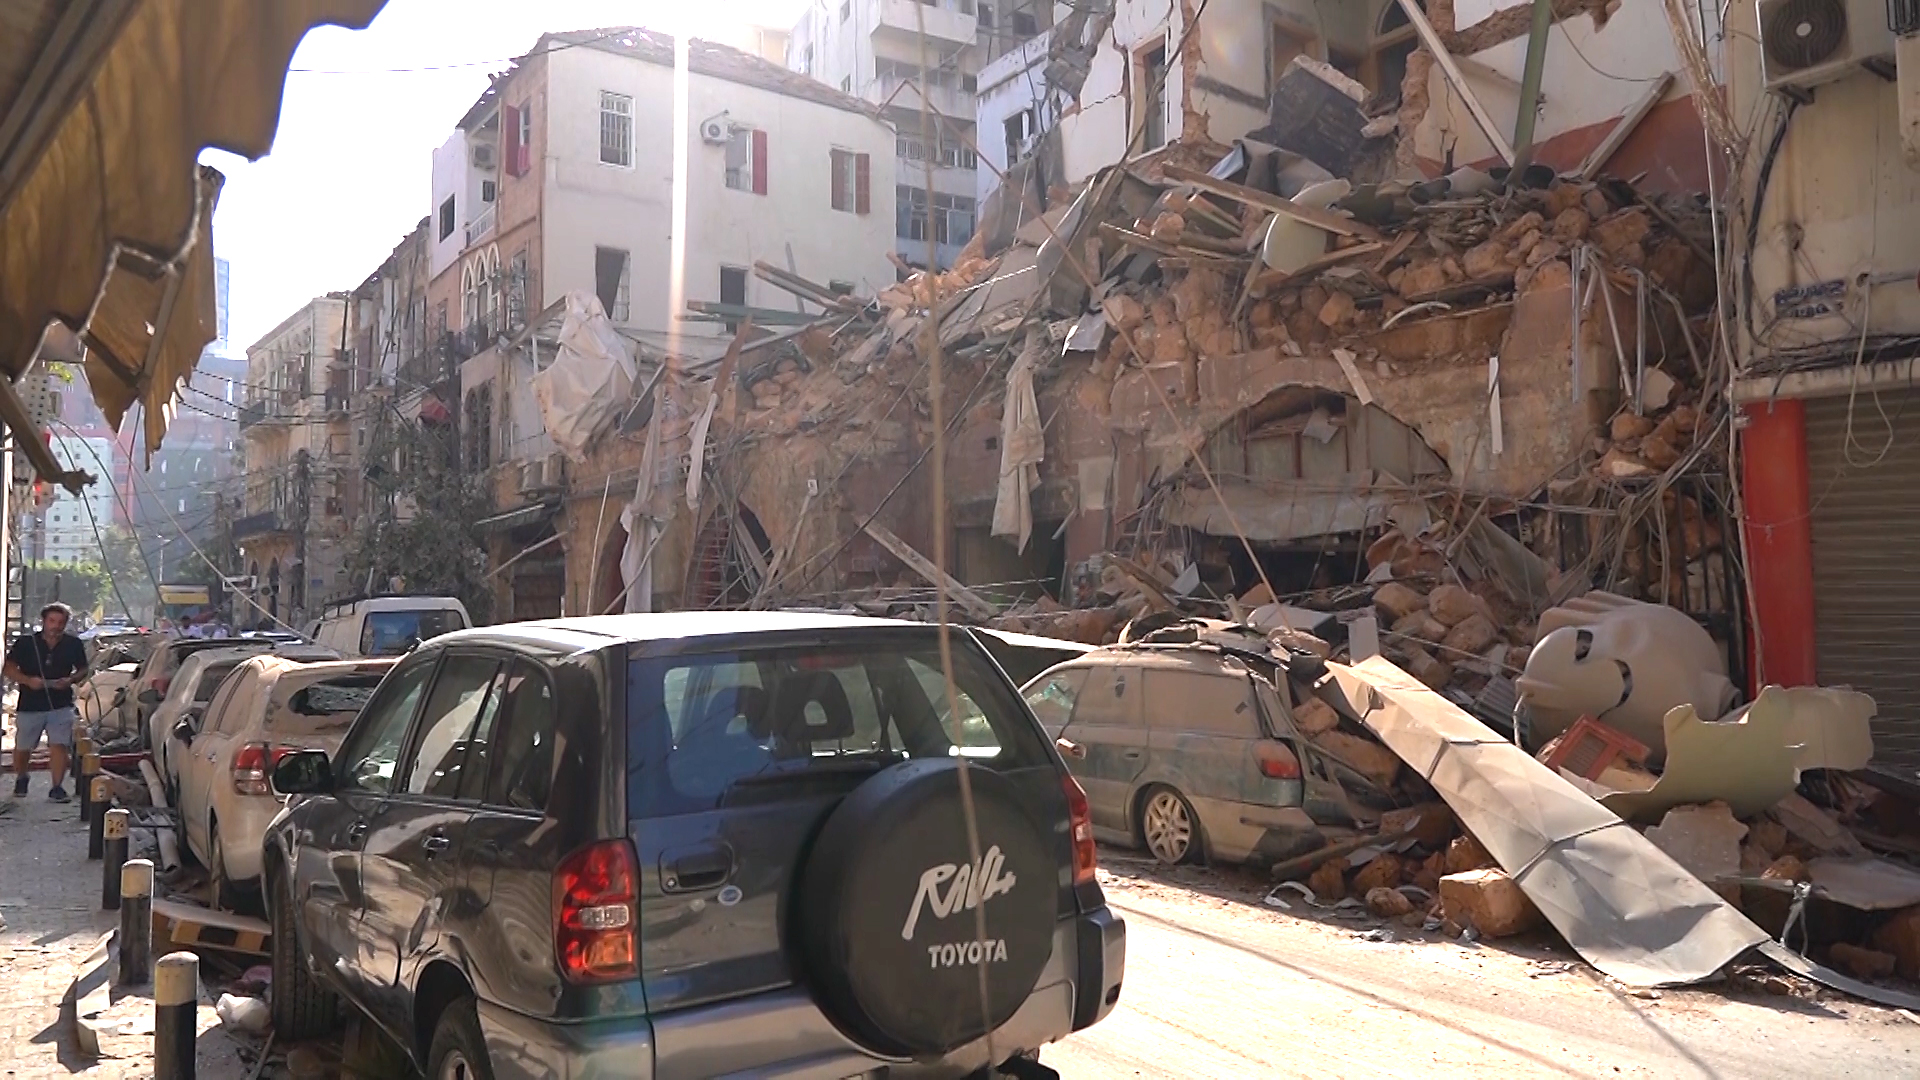 Destruction caused by the explosion in Beirut on August 4, 2020.